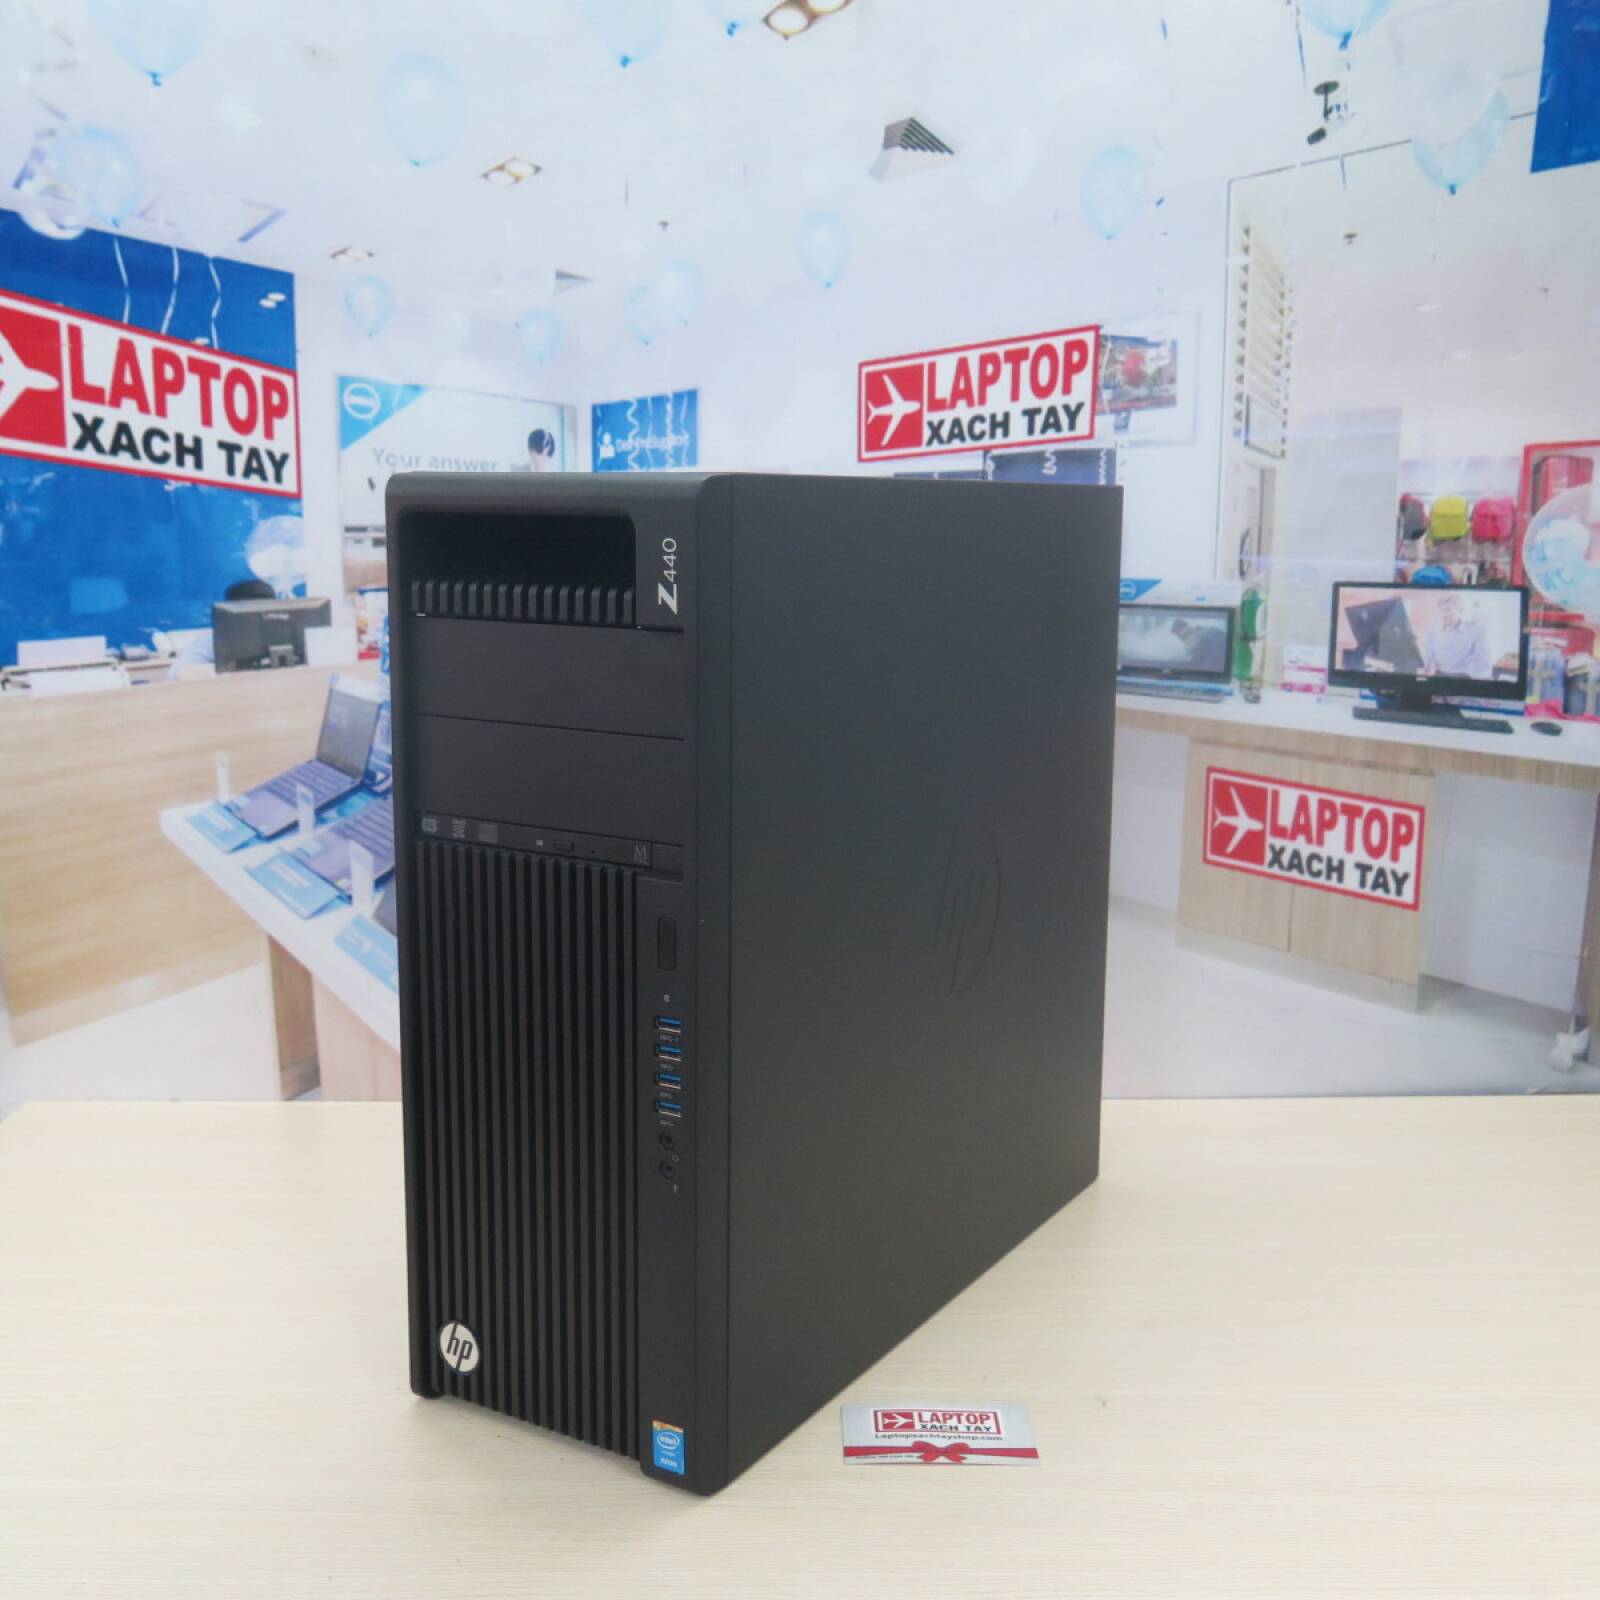 HP Workstation Z440 tại Laptopxachtayshop